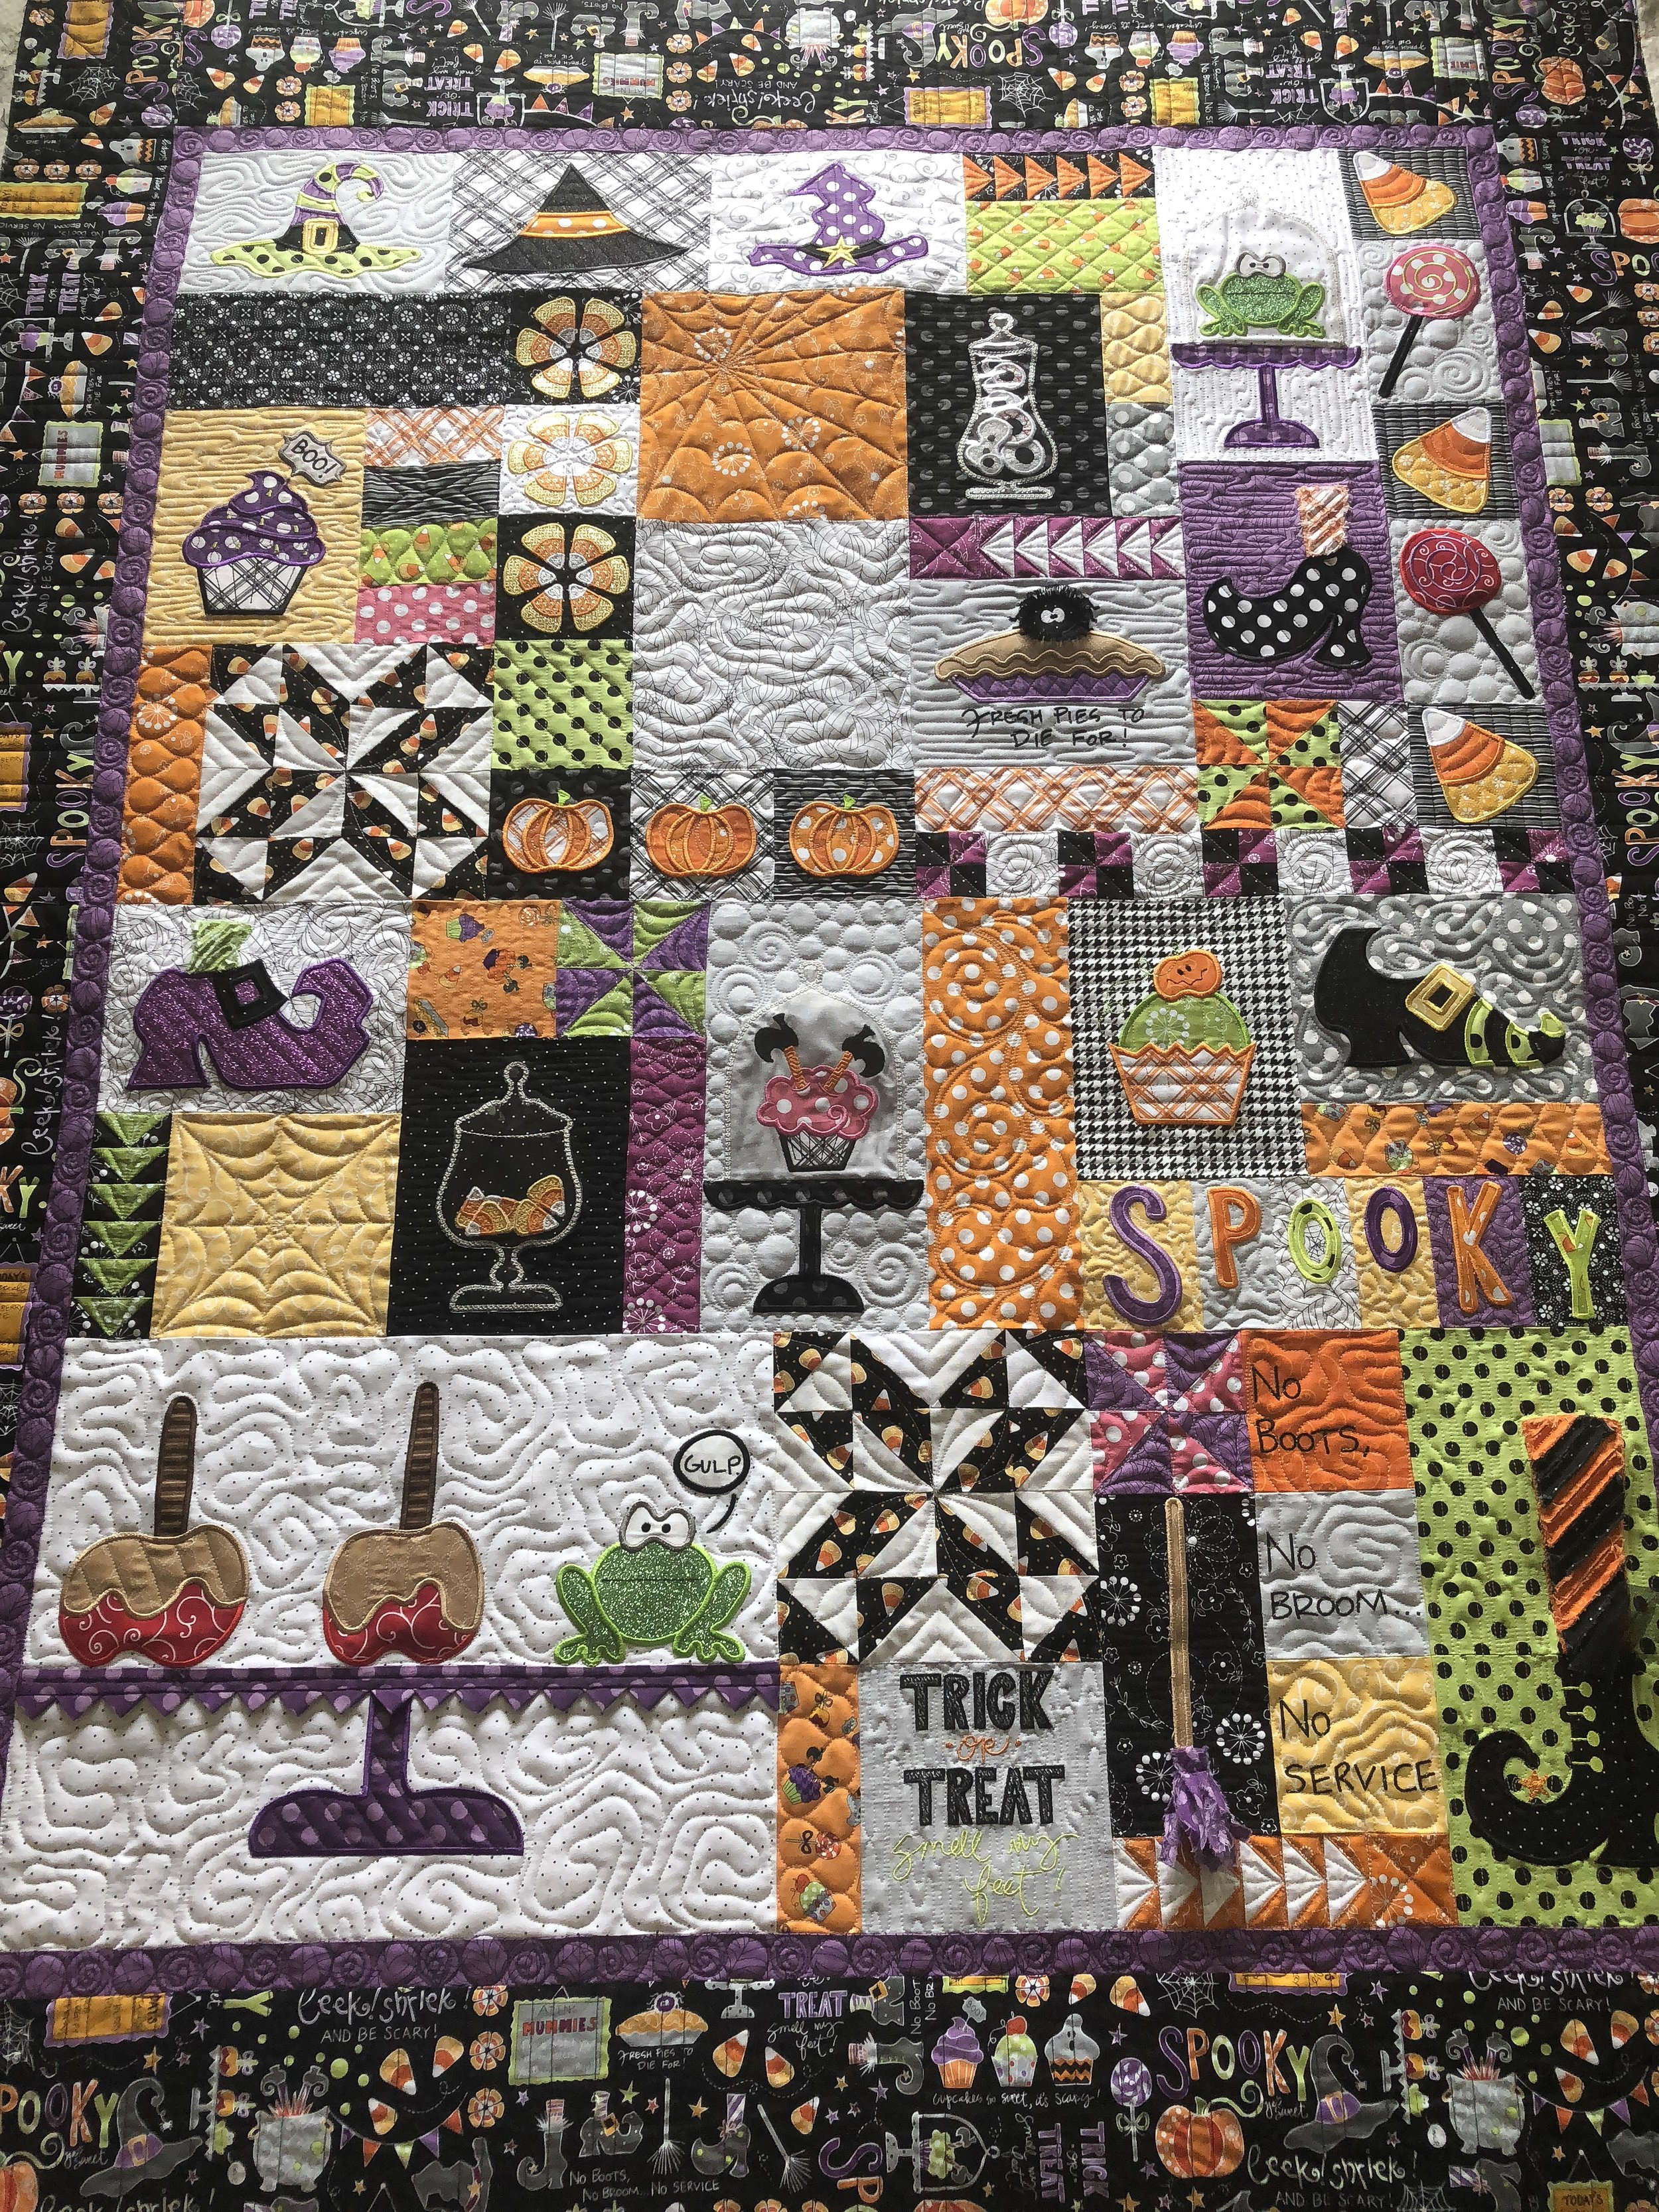 I wanted to add lots of textures throughout, repeating them here and there, to tie the quilting together.